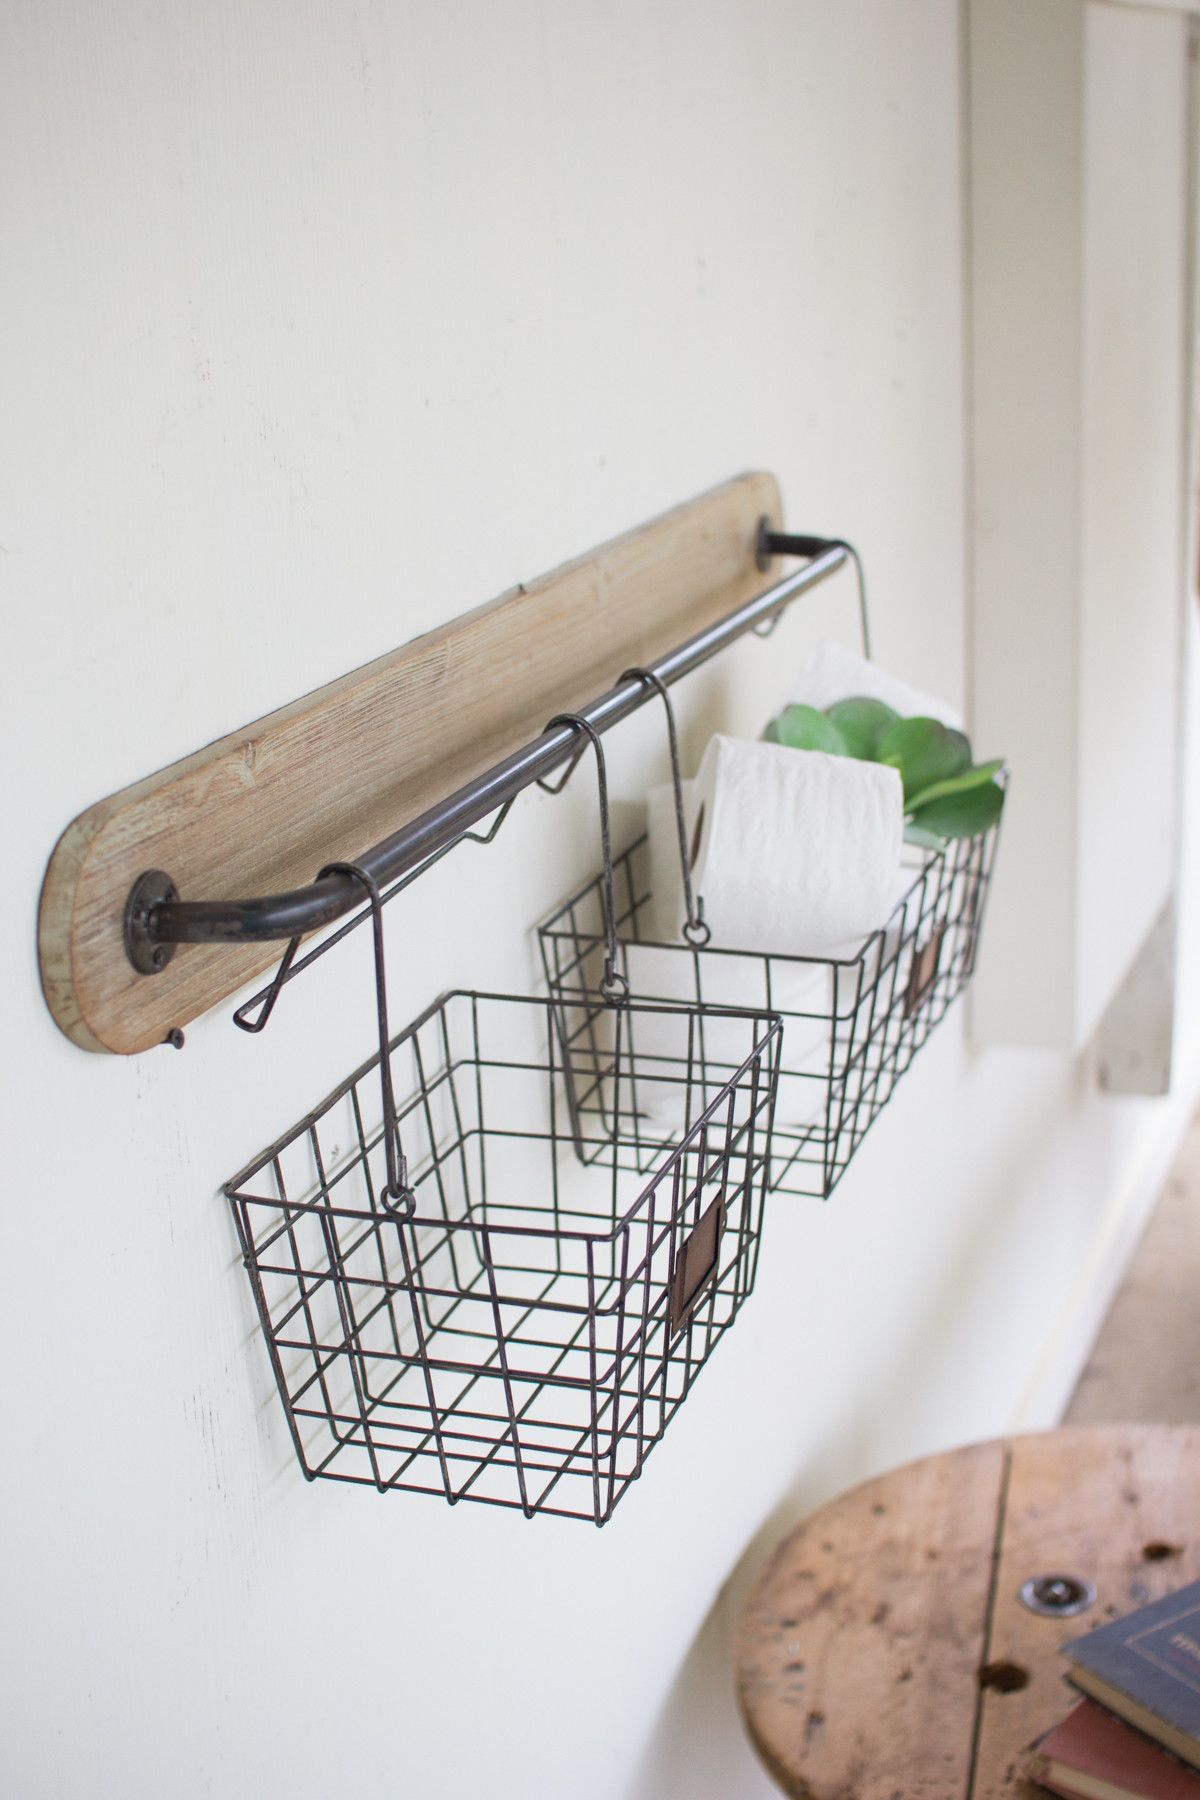 Kalalou Wood And Metal Wall Bracket With 2 Wire Baskets | Pinterest ...